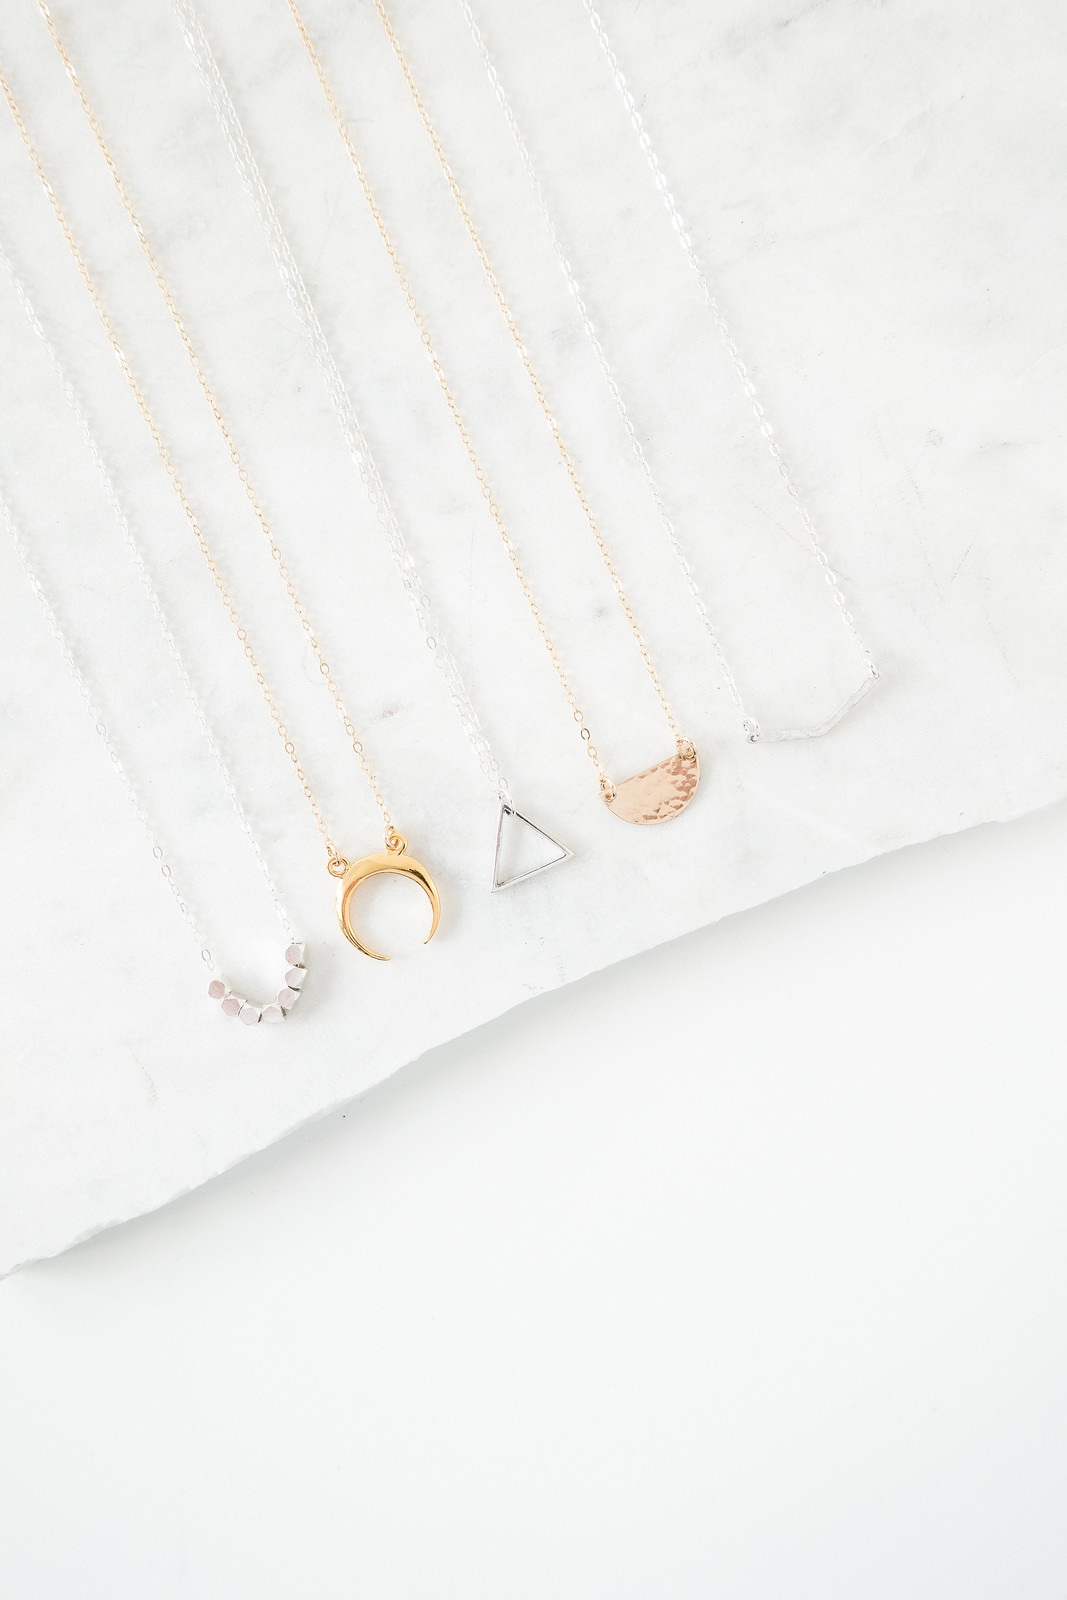 Most Wanted Minimal Jewellery